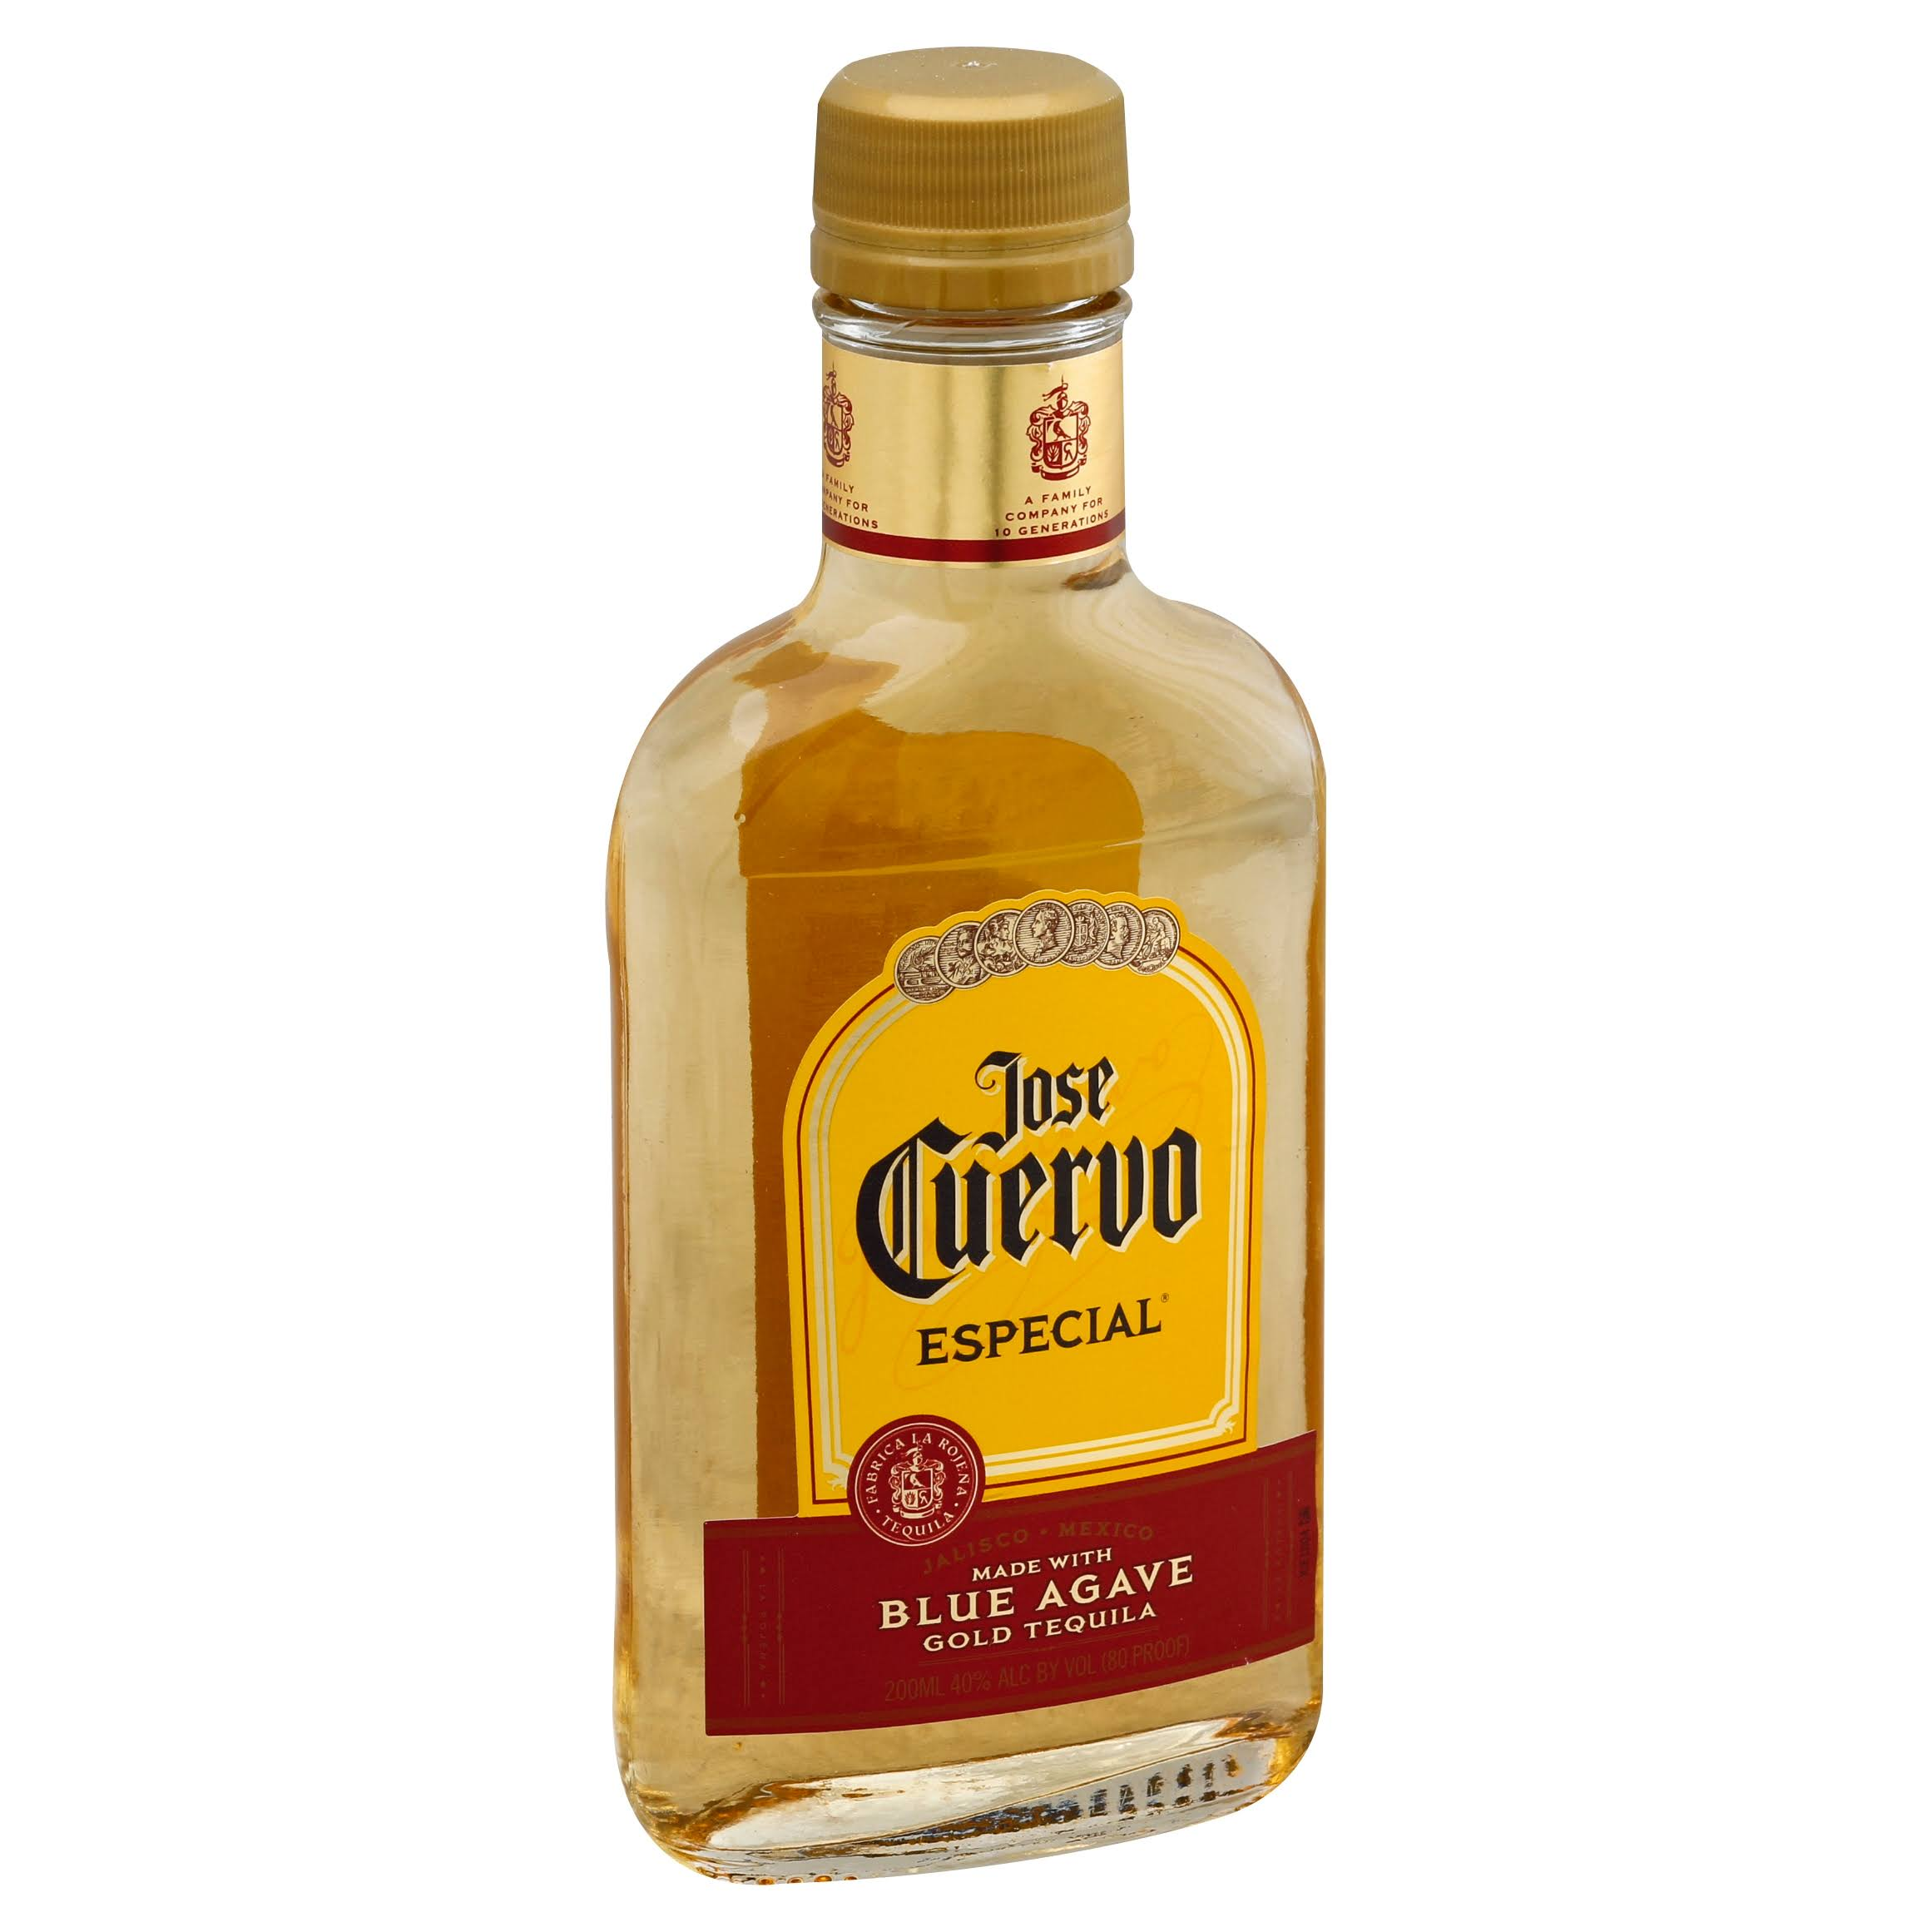 Jose Cuervo Especial Tequila, Gold - 200 ml